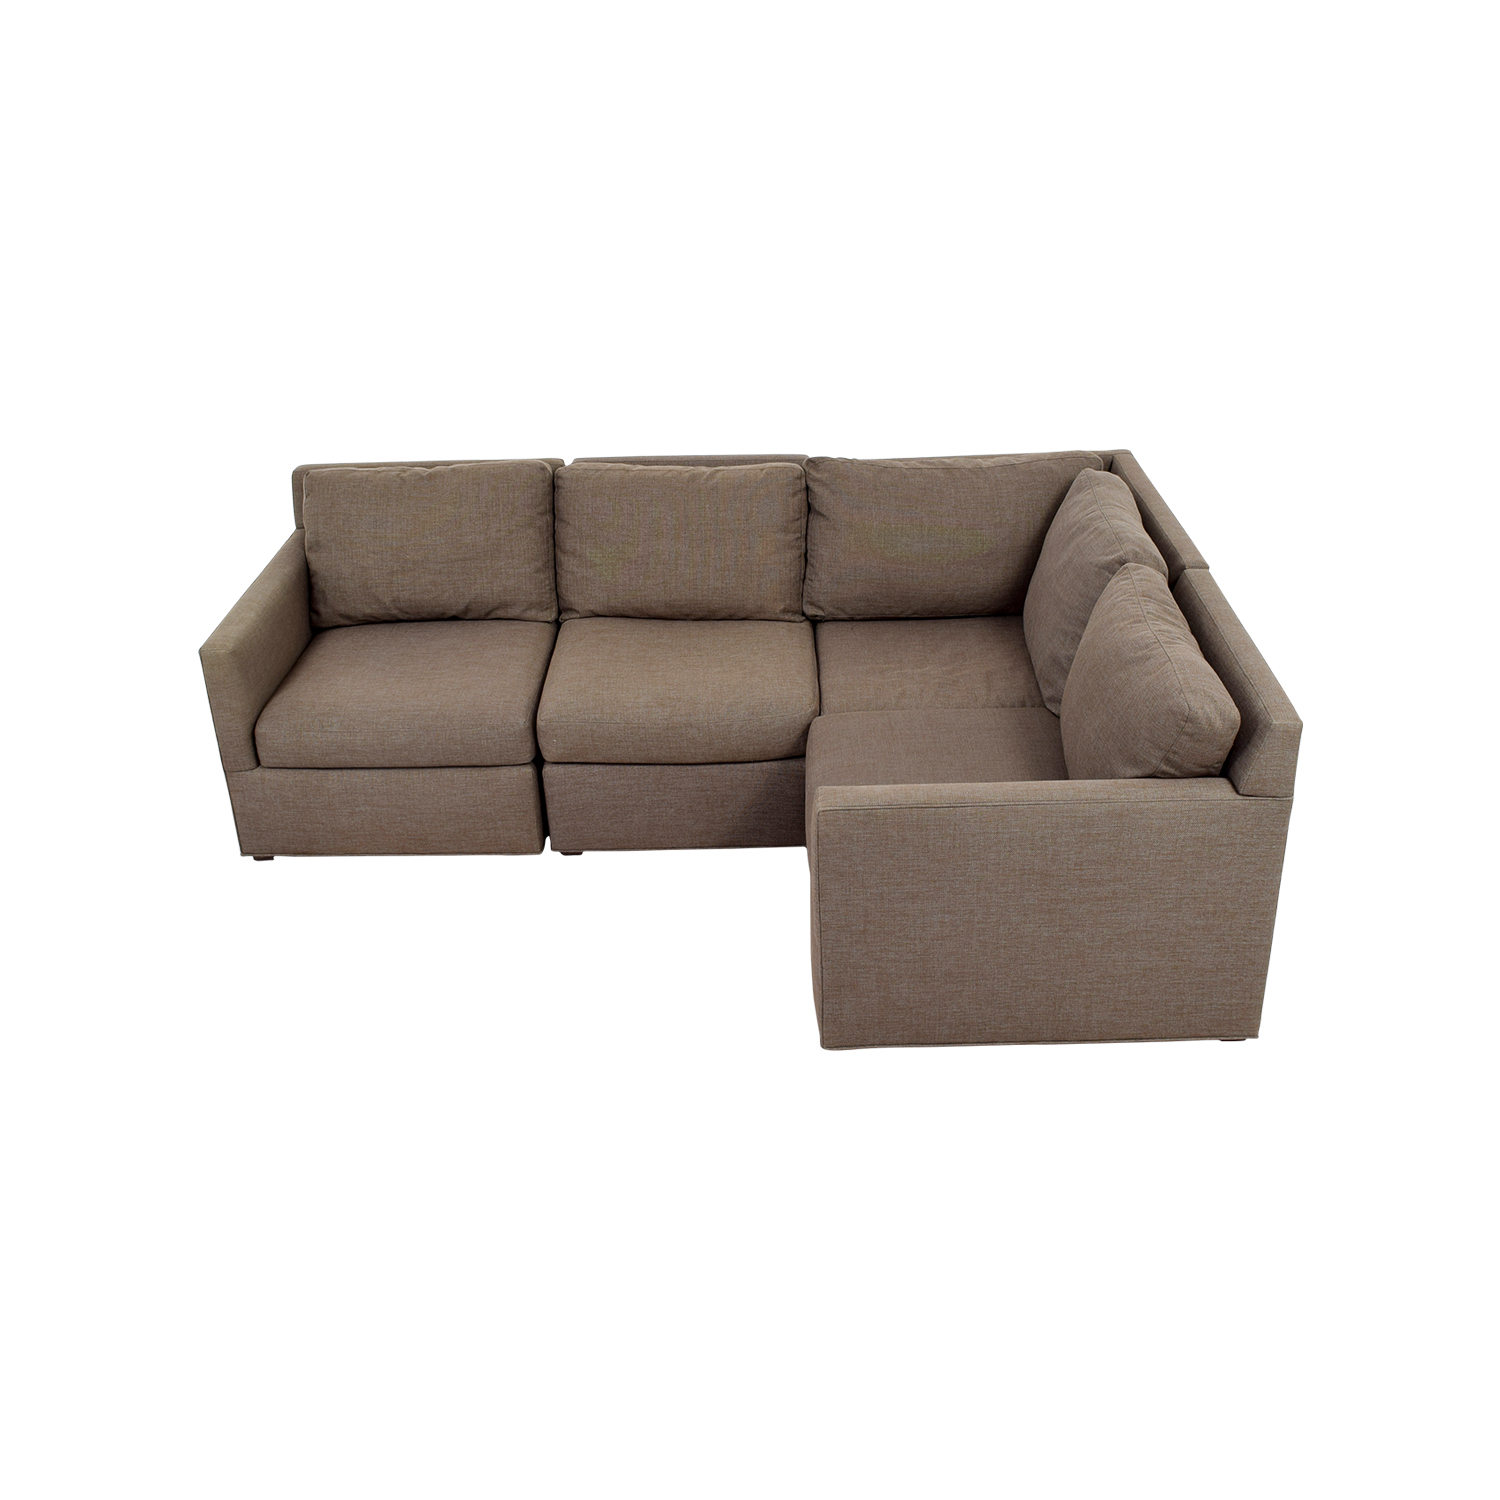 Sectionals for sale gallery of living with sectionals for for Bartlett caramel left corner chaise sectional